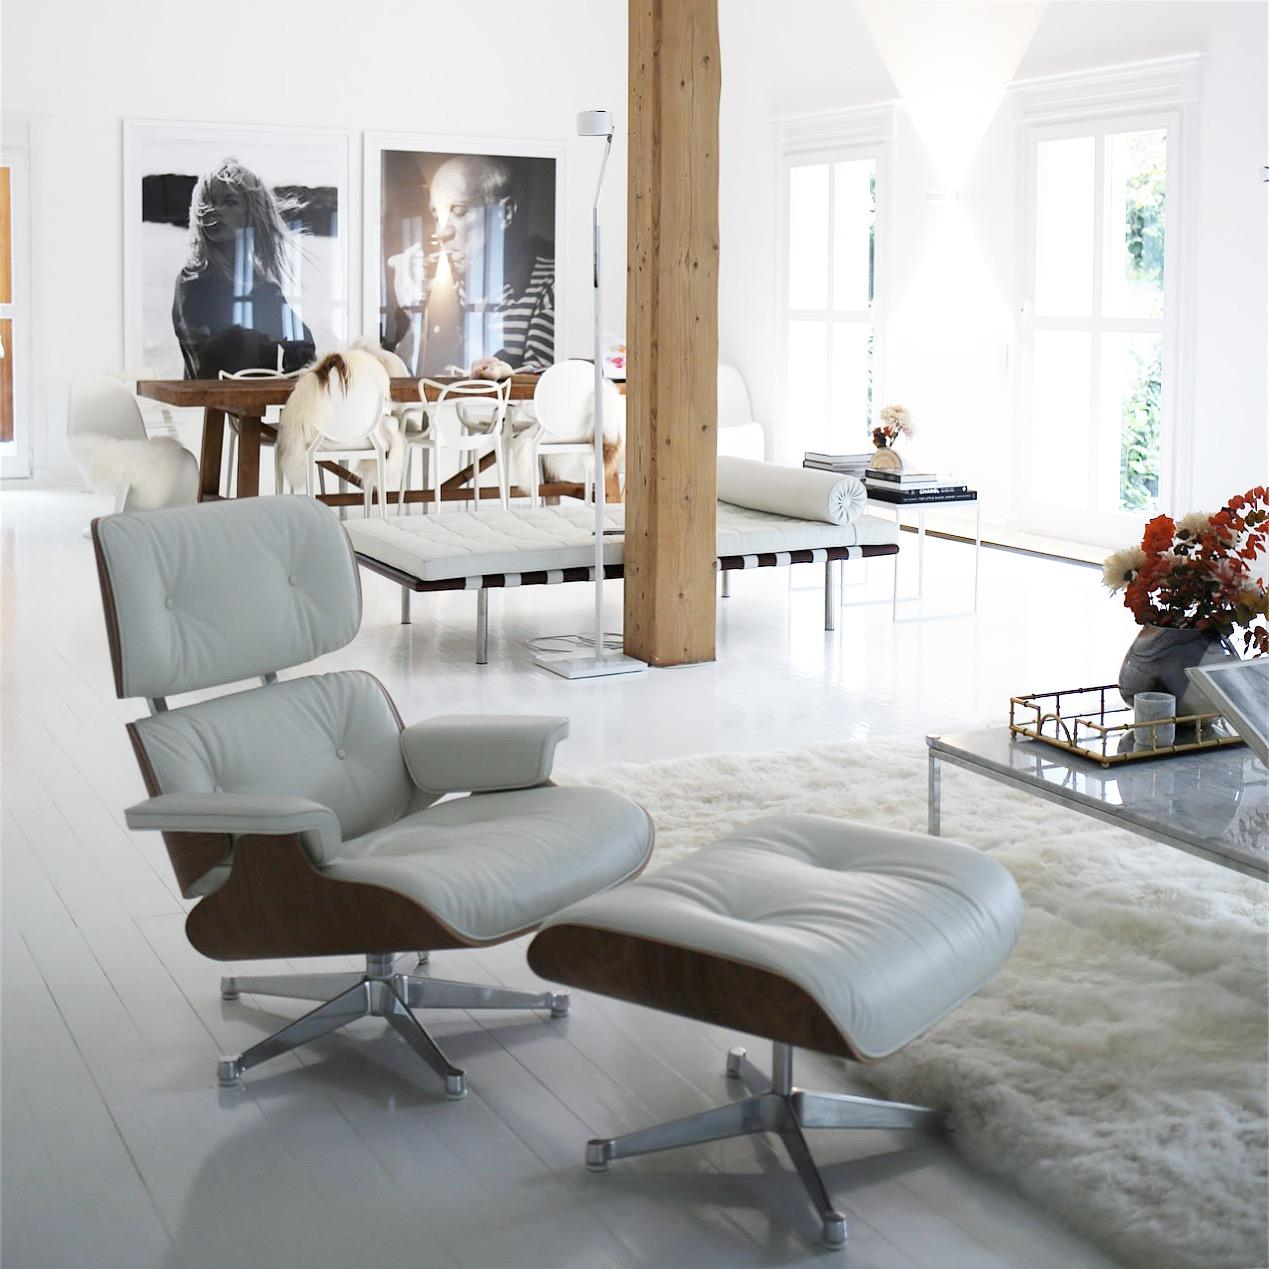 Lese Sessel lesesessel bilder ideen couchstyle